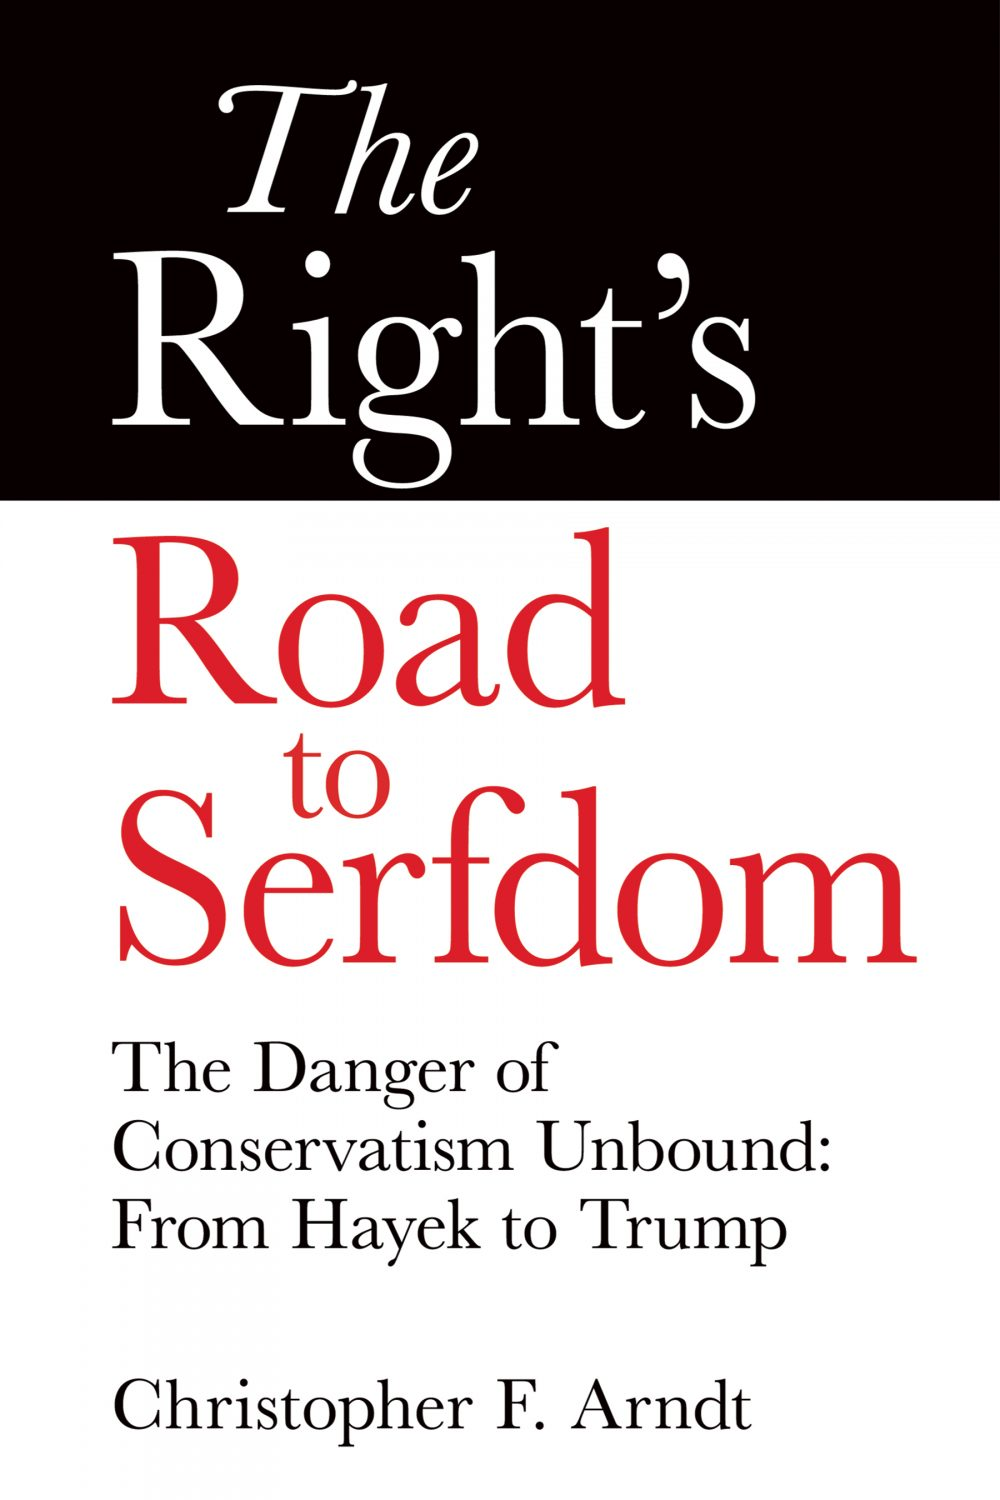 The Right's Road to Serfdom, by Chris Arndt